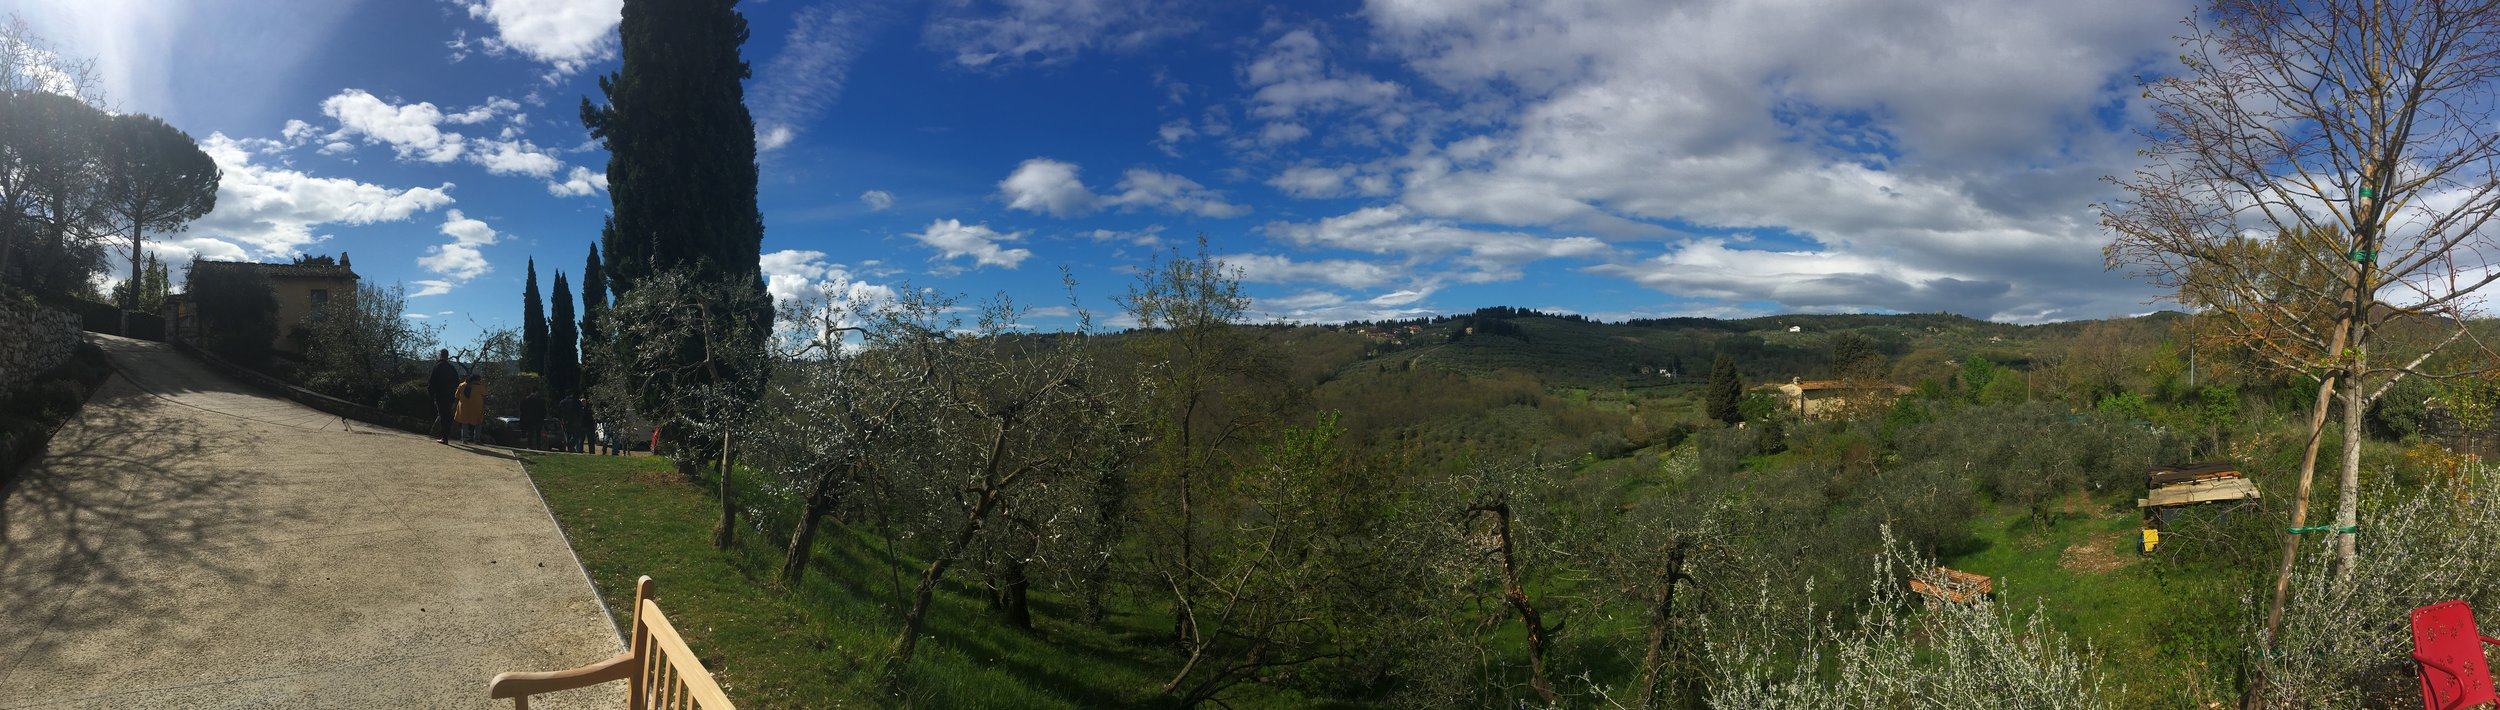 The Poggo la Noce estate in Fiesole